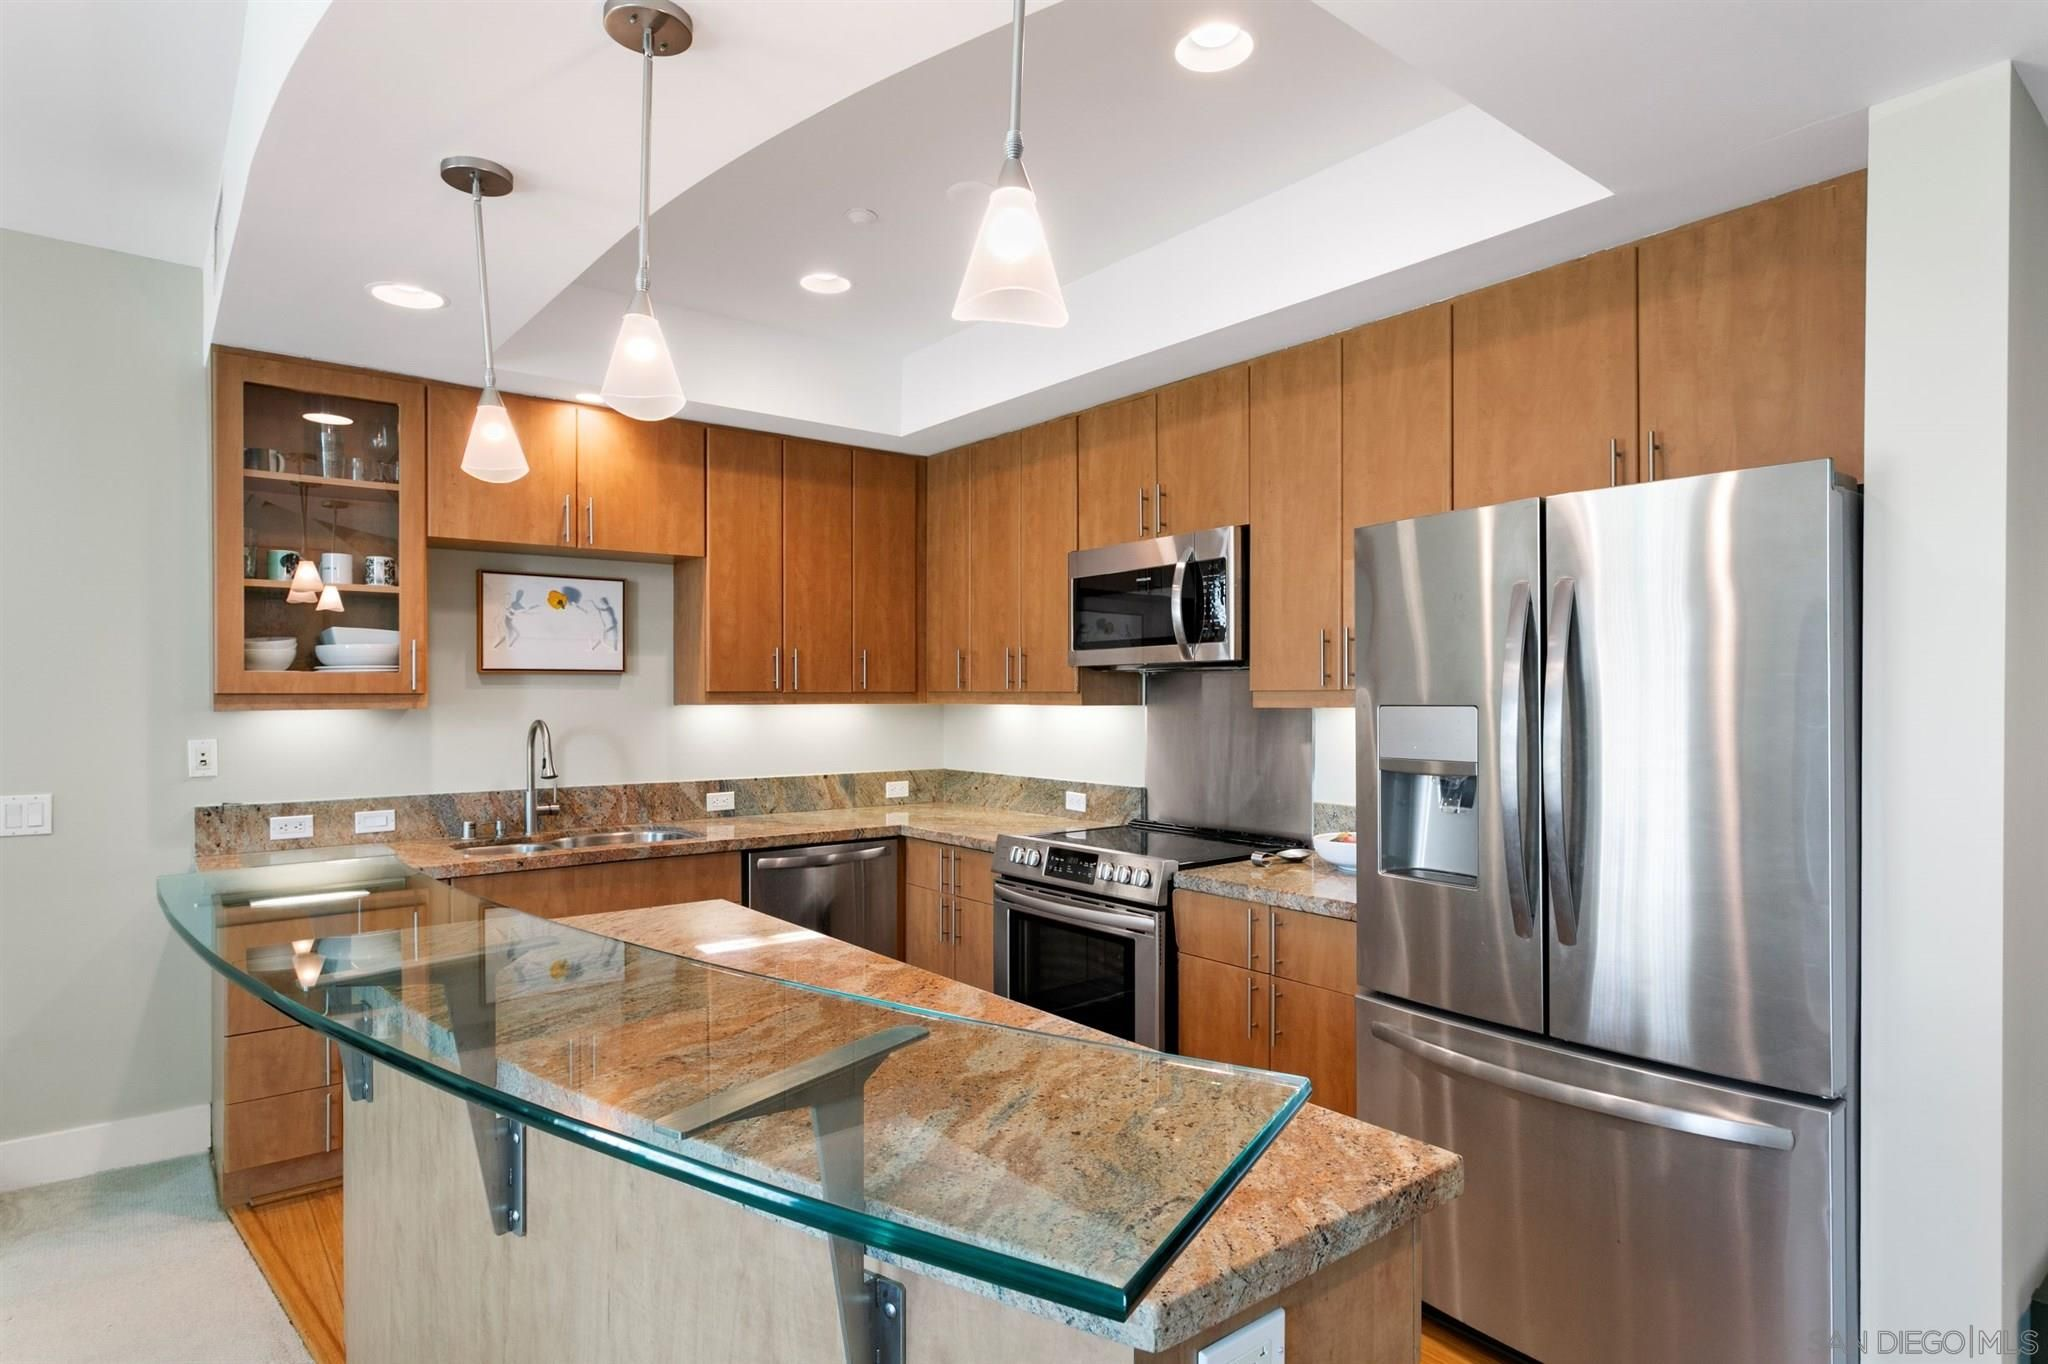 Main Photo: MISSION HILLS Condo for sale : 2 bedrooms : 3980 9th Ave. #206 in San Diego